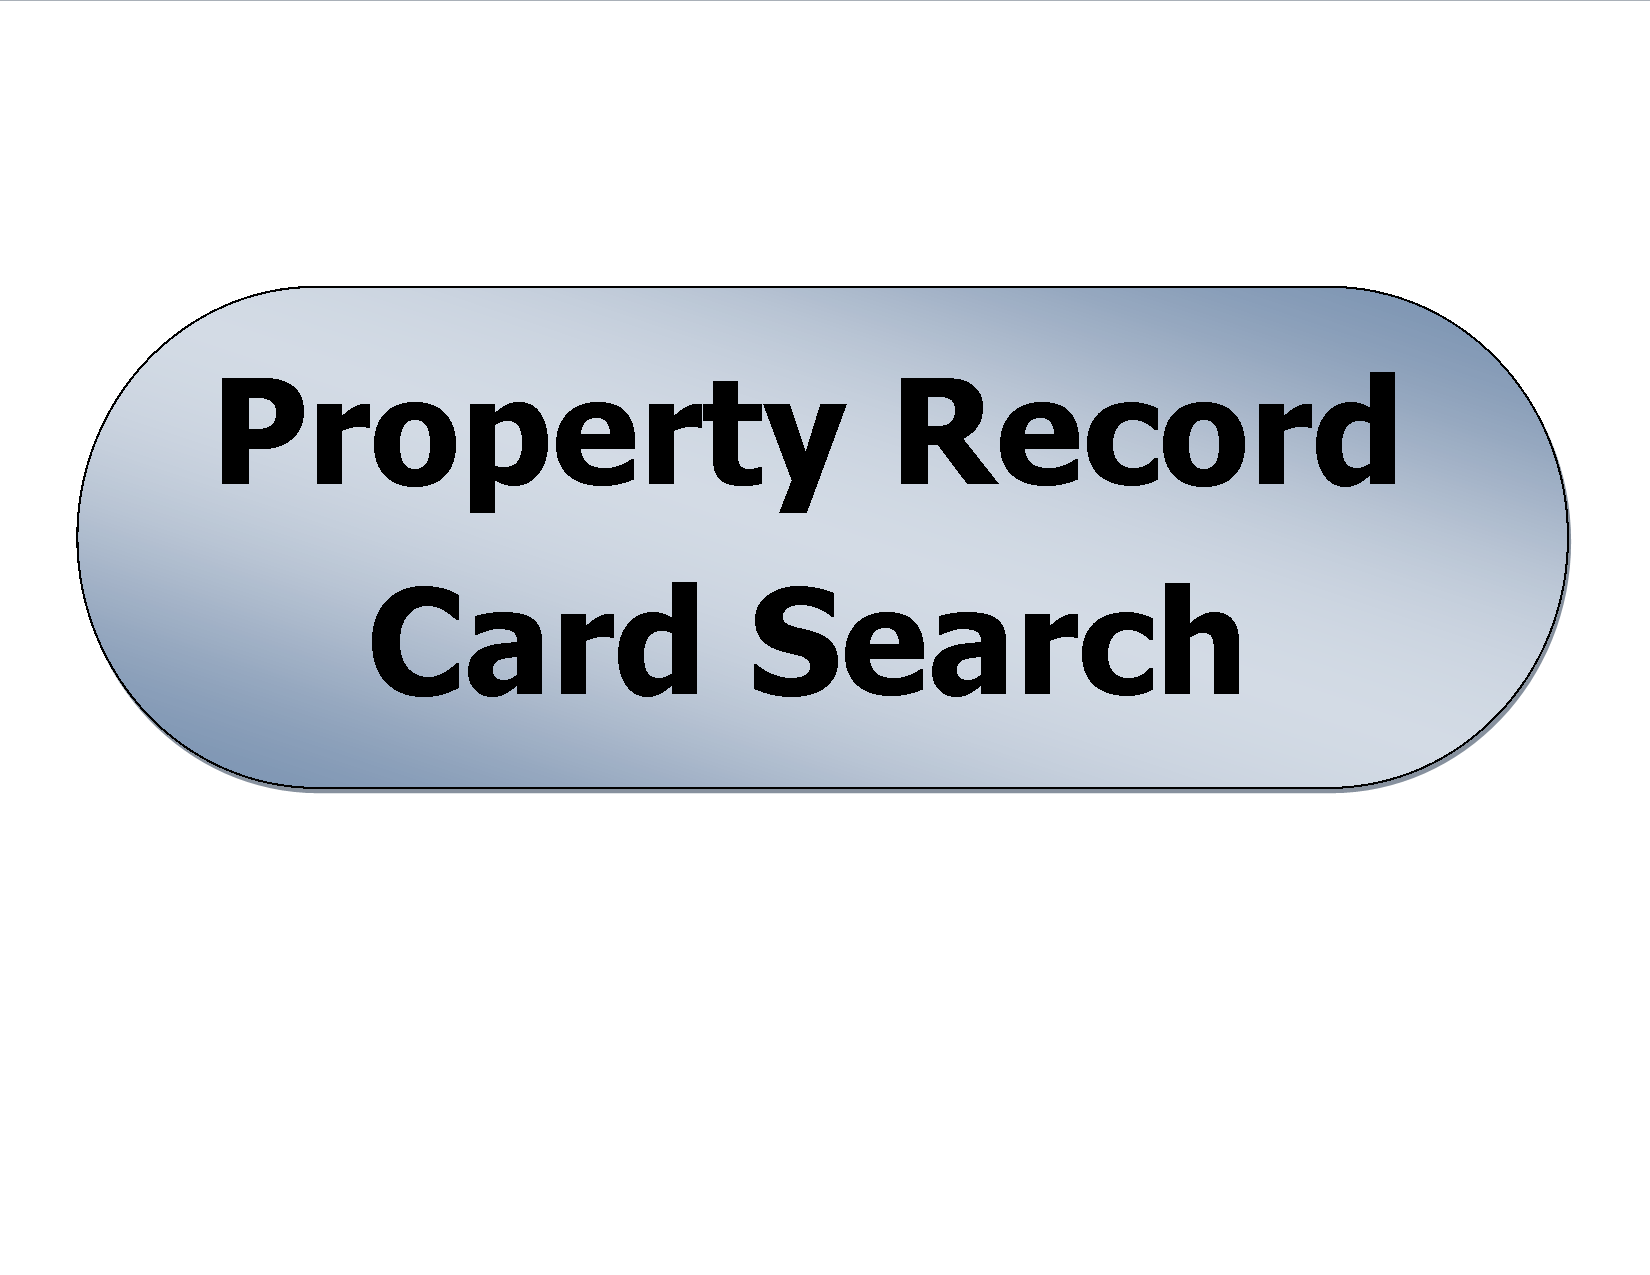 Property Record Card Search